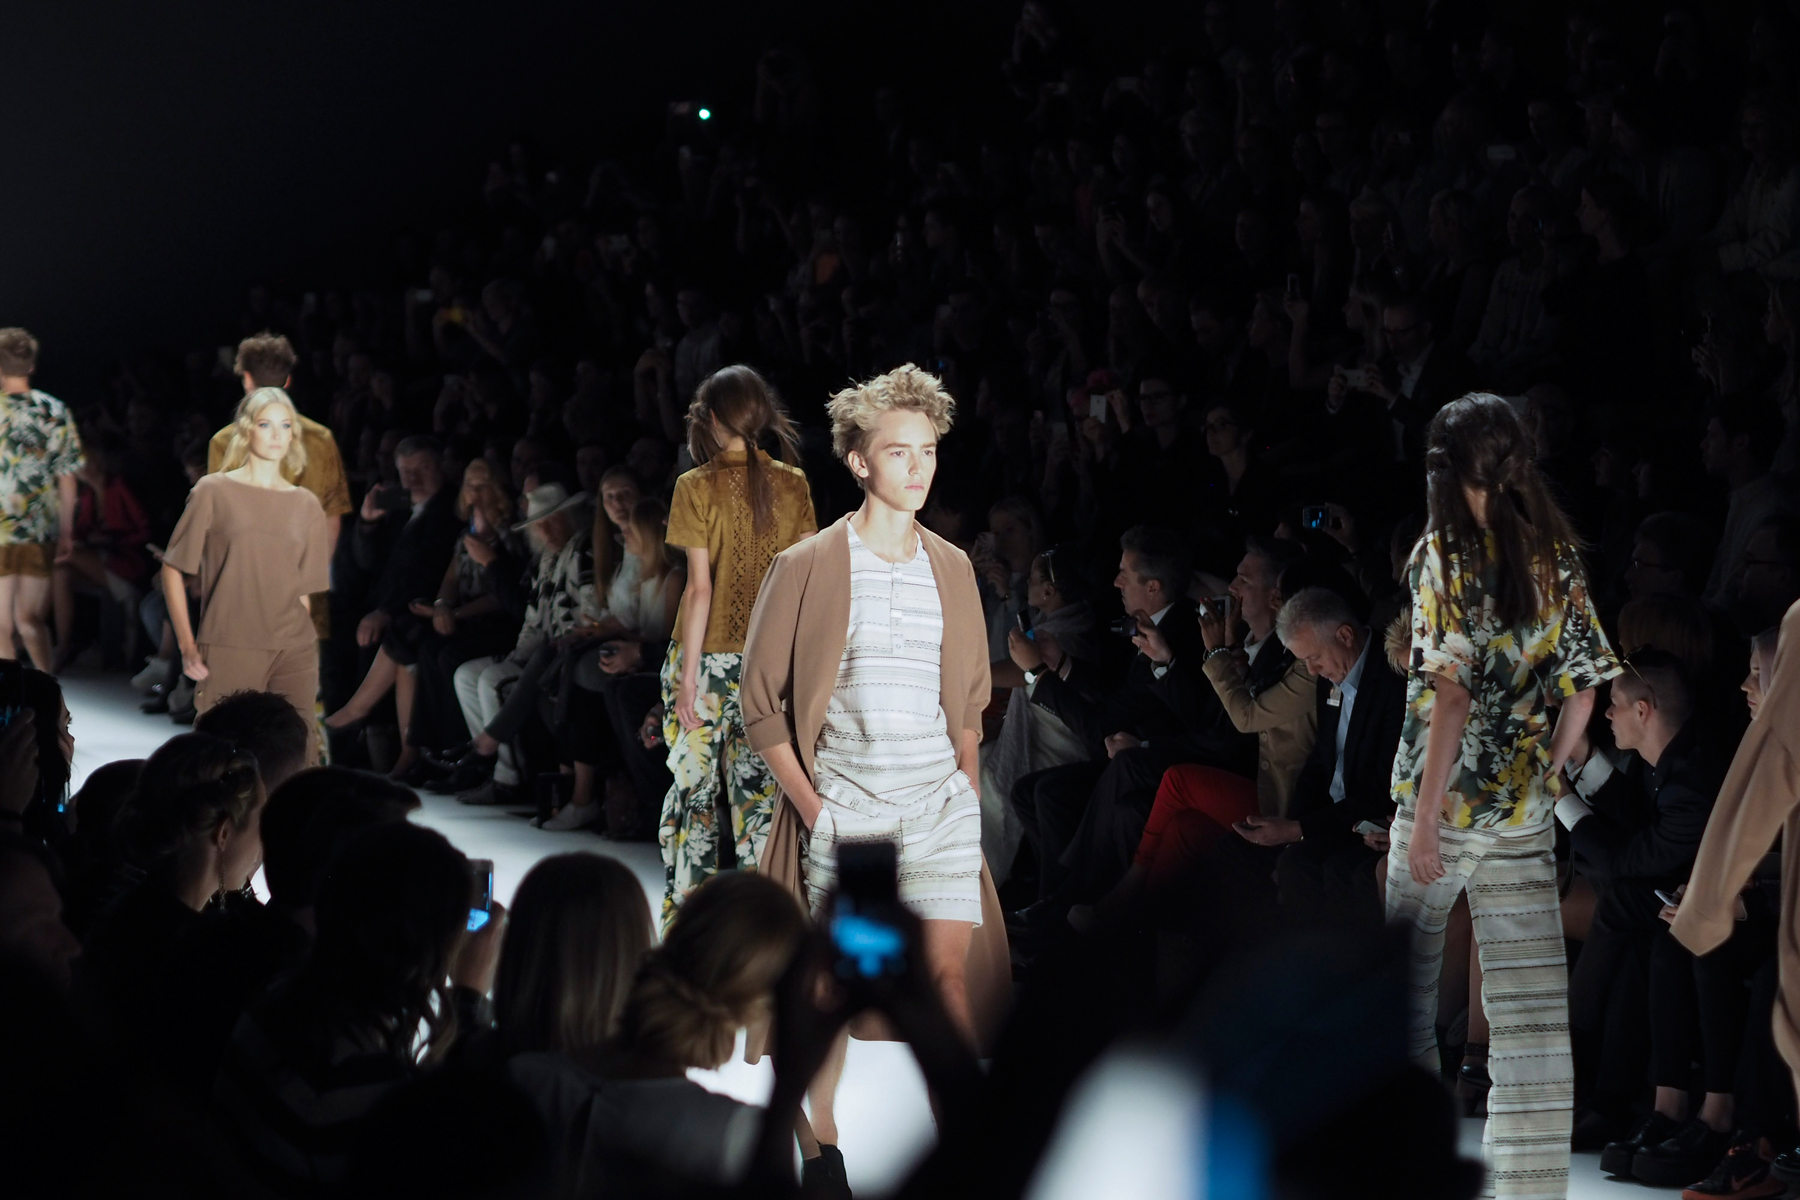 mercedes benz fashion week berlin mbfwb ss 2016 recap cats & dogs fashion blog ricarda schernus 13